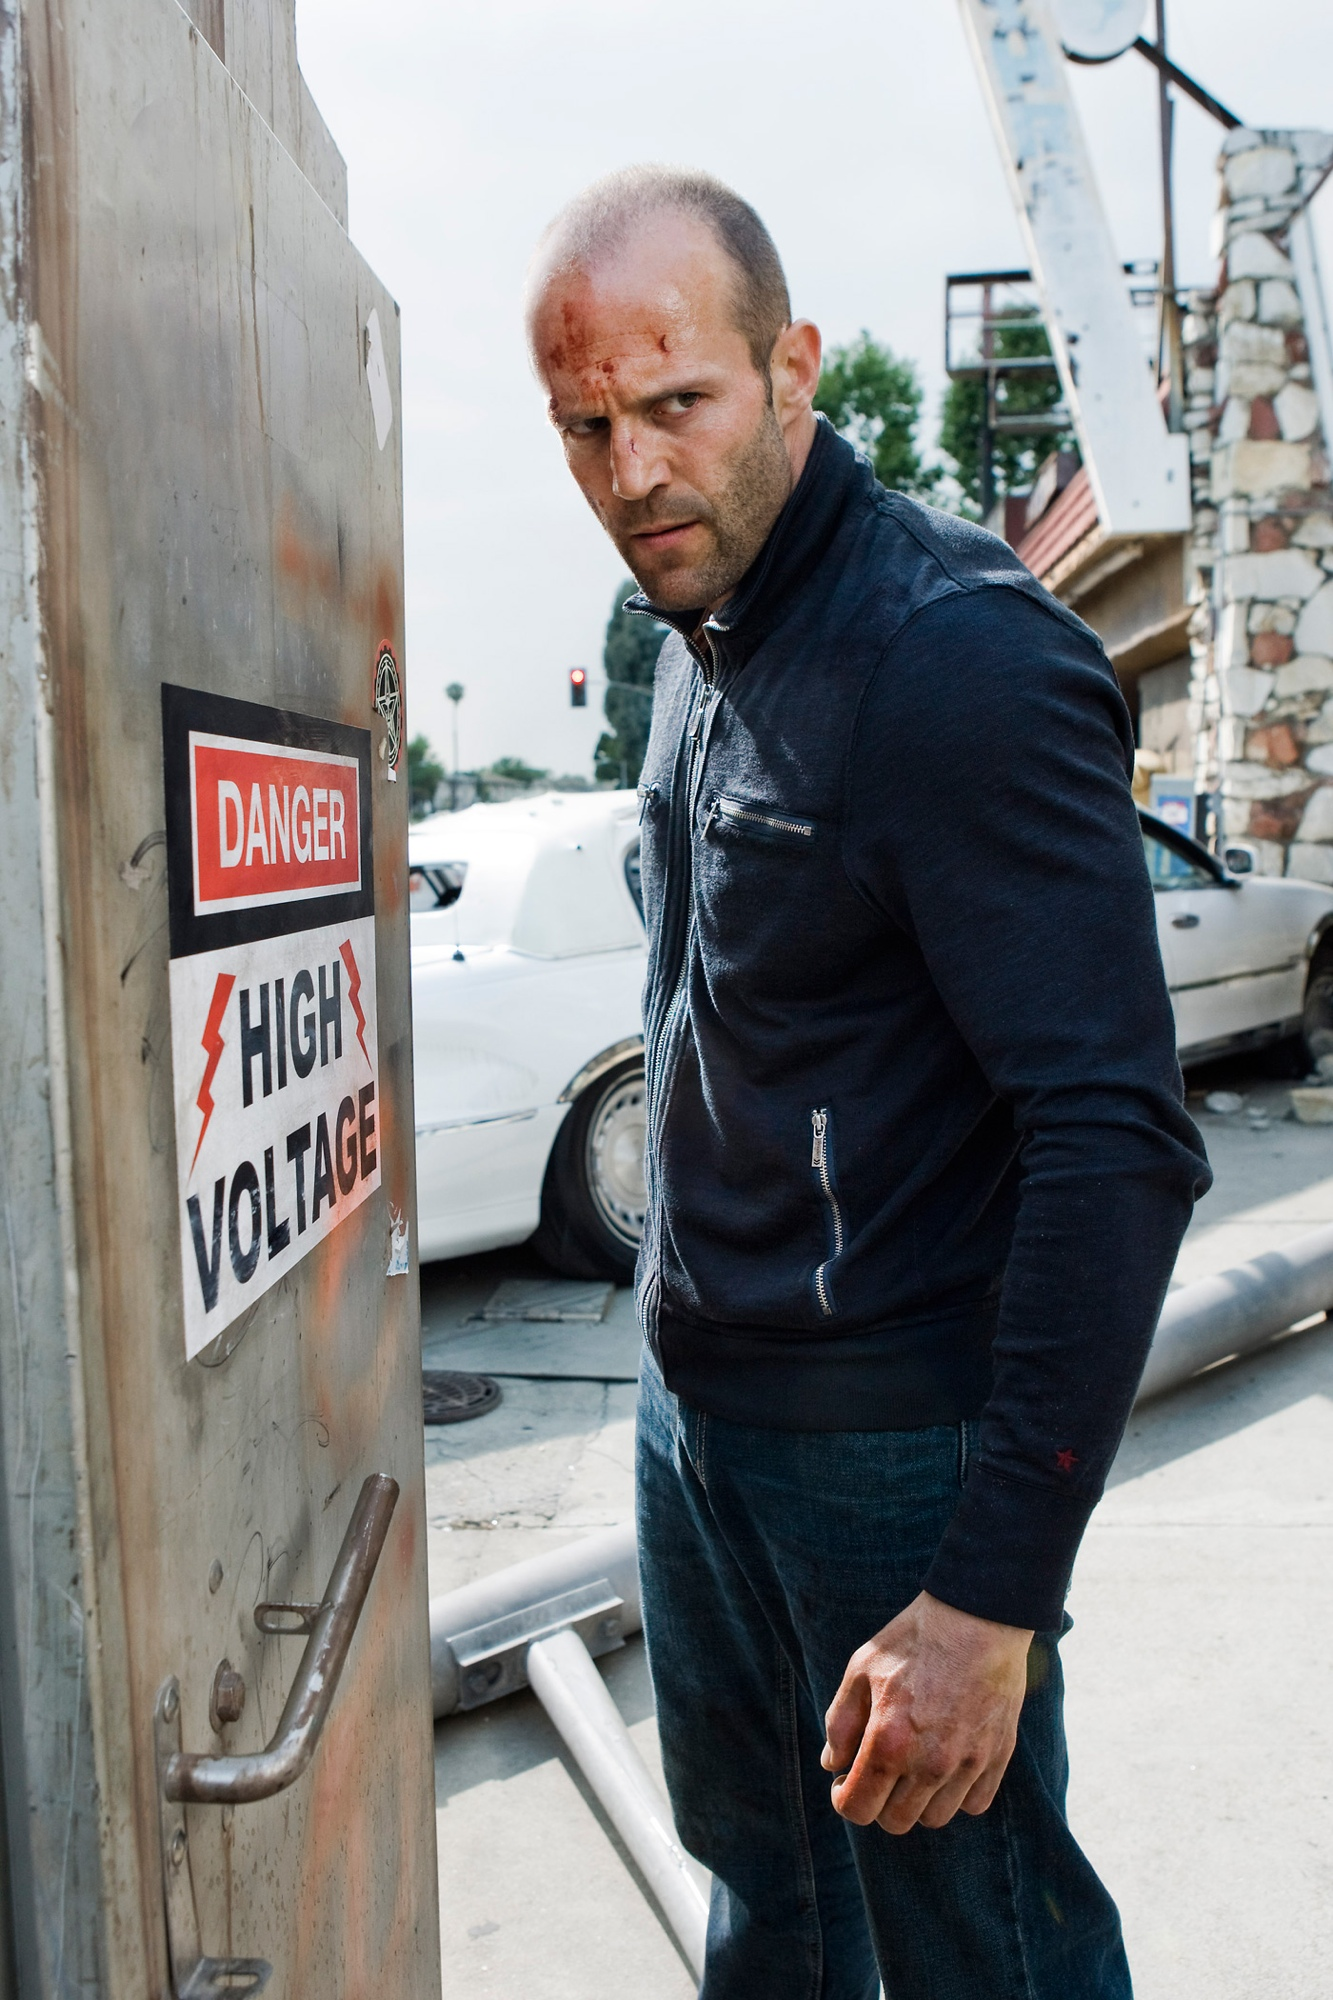 statham single parents Jason statham dives in at the deep end for a man-vs-shark update  a marine  biologist, single mother (of a very cute kid) and unlikely love.